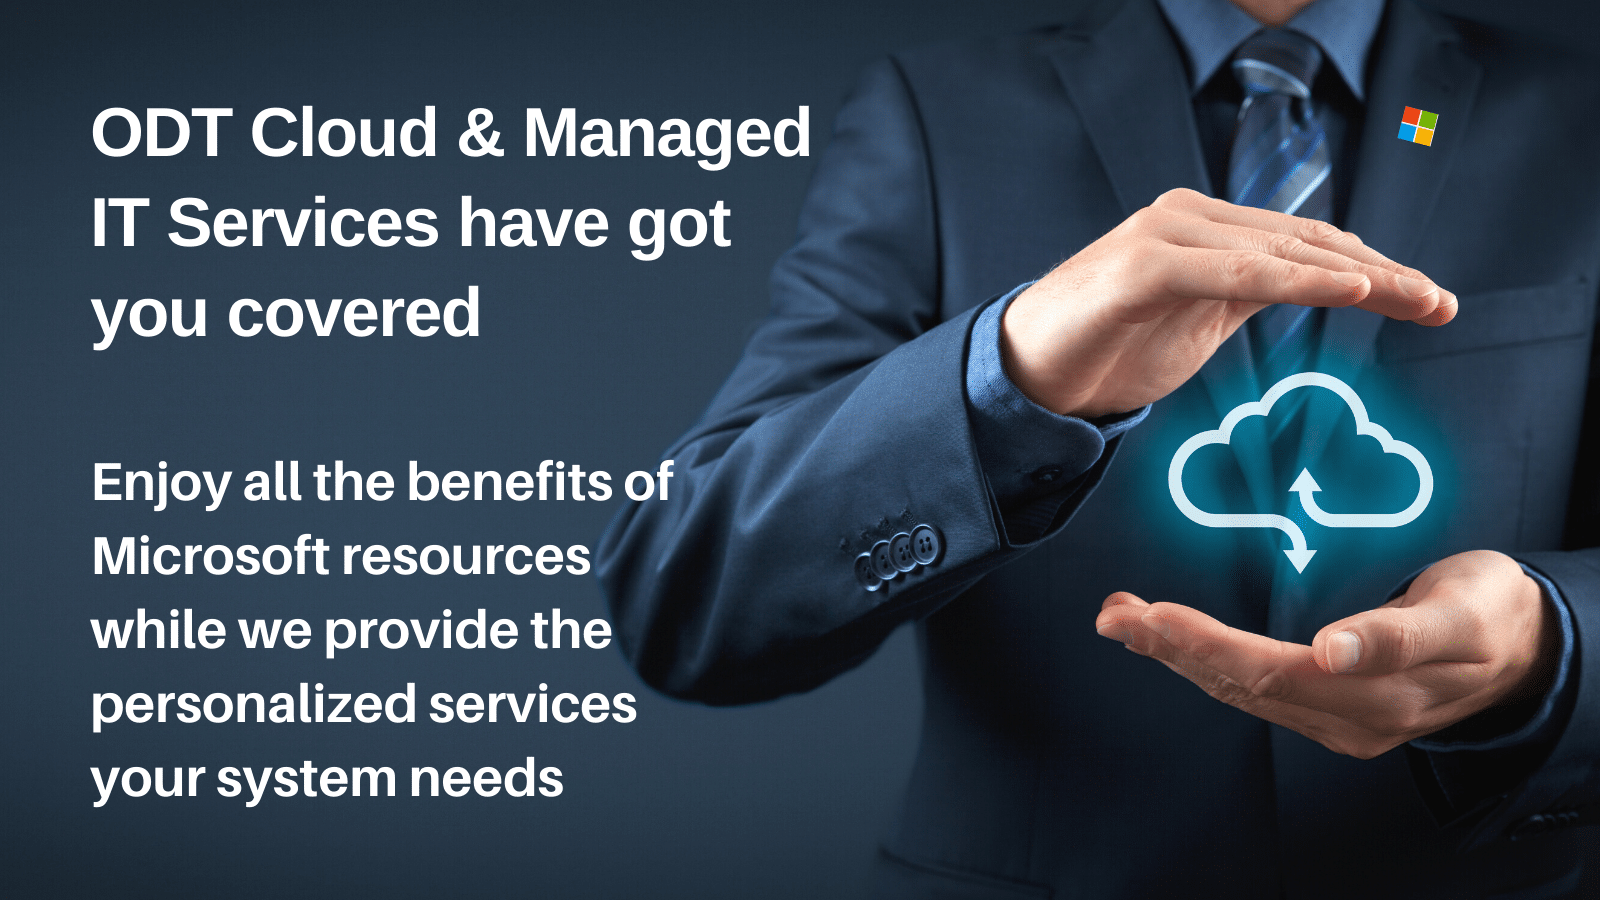 ODT Cloud & Managed IT Services have got you covered. Enjoy all the benefits of Microsoft resources while we provide the personalized services your system needs.